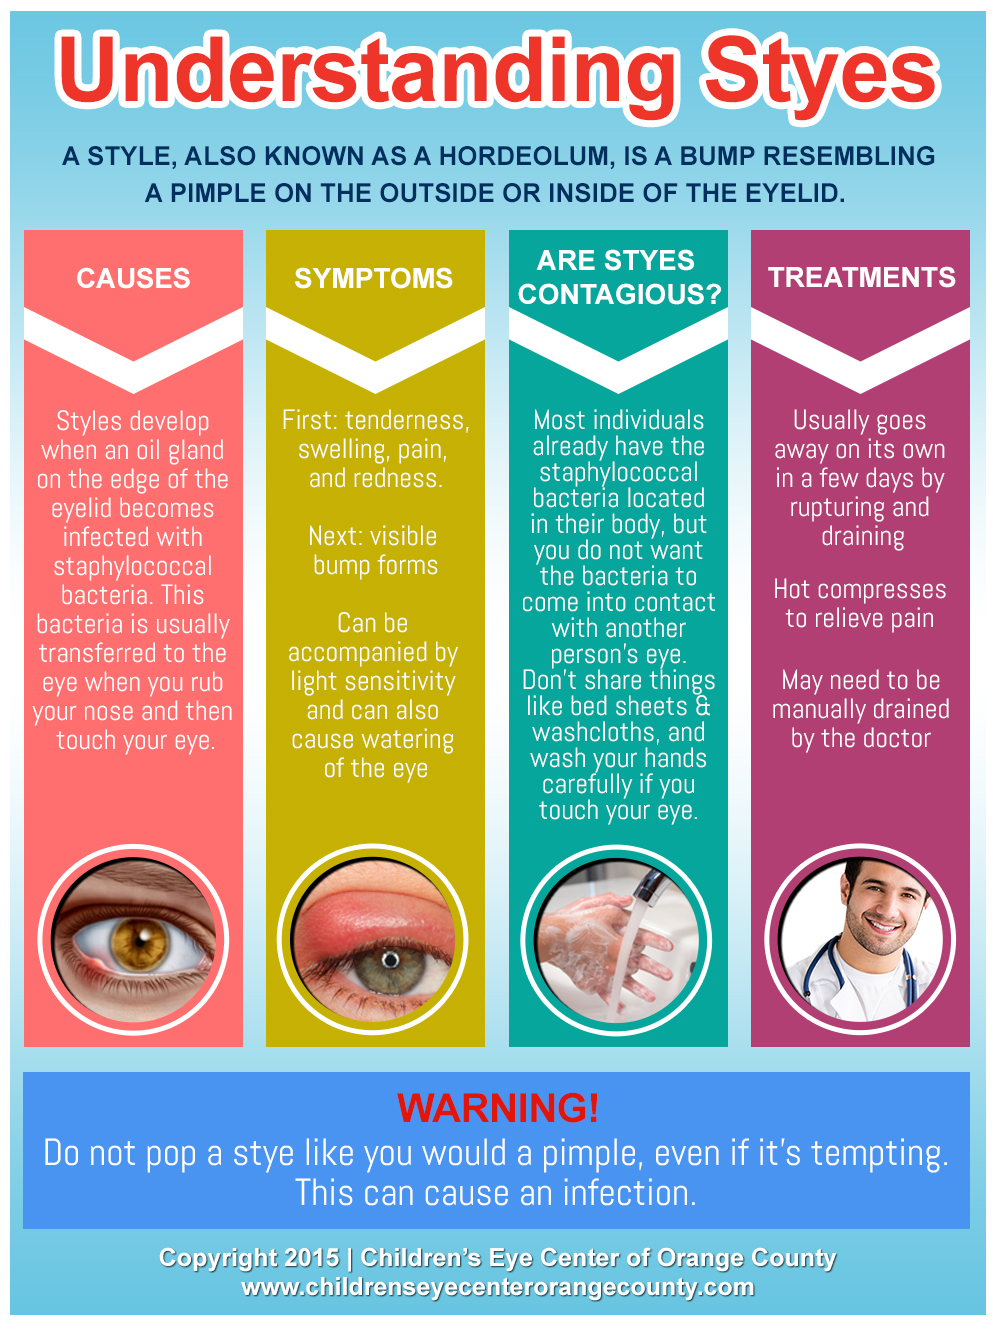 Understanding-Styes-by-Childrens-Eye-Center-of-Orange-County